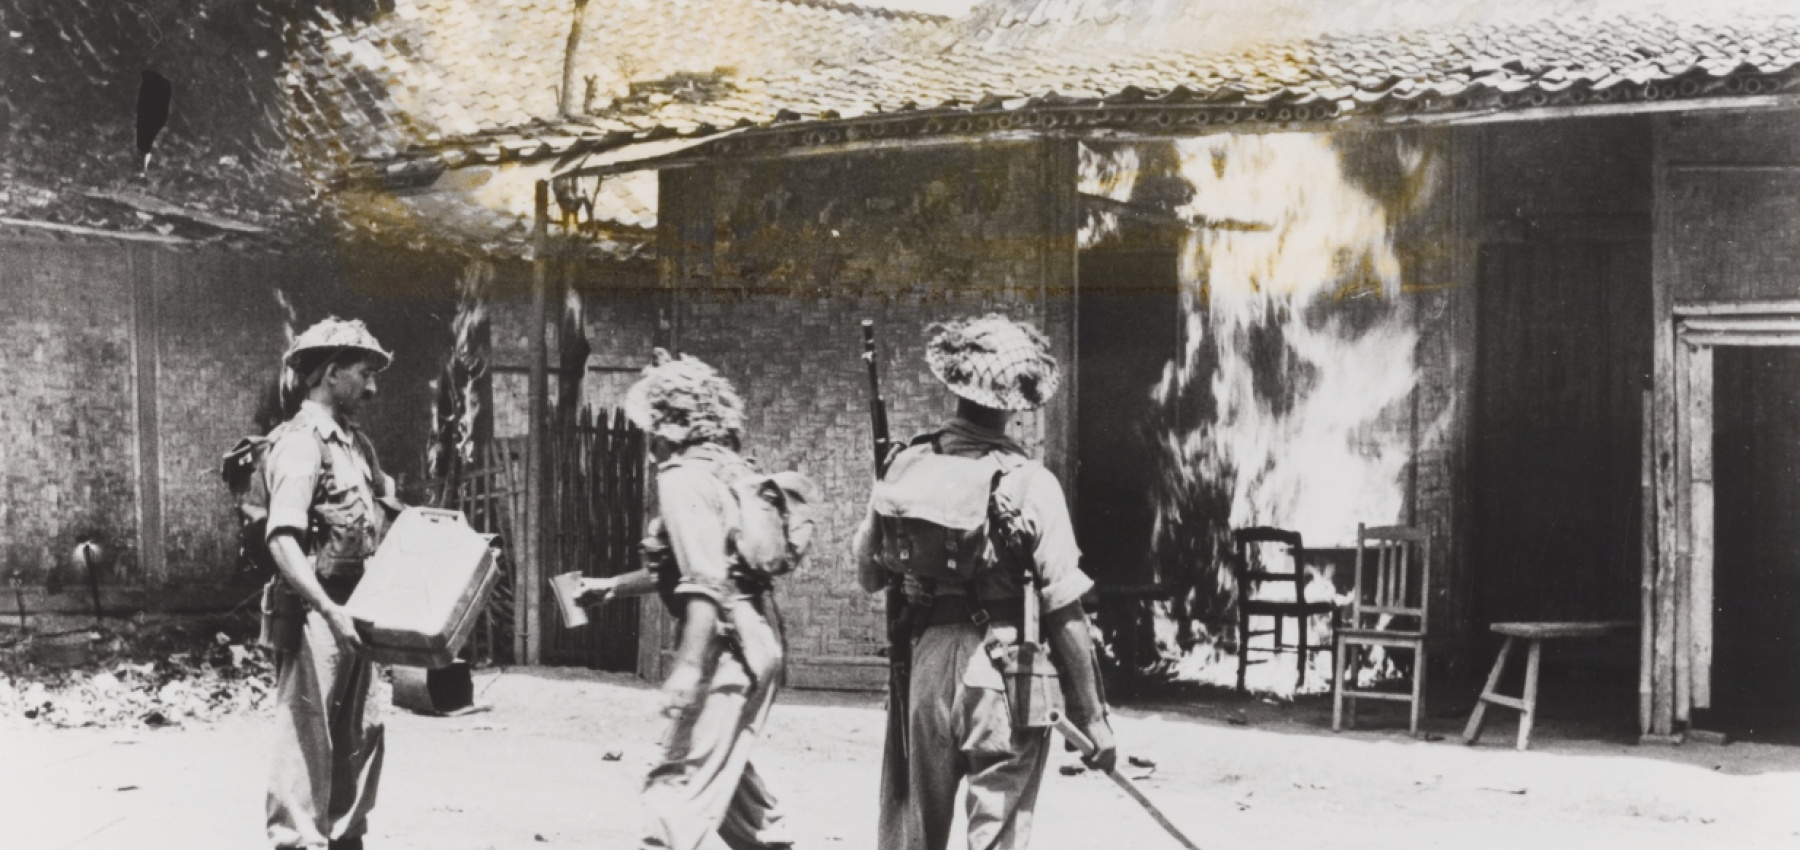 Soldiers from the British Indian Army set fire to houses in Bekasi (West-Java). Picture: NIMH